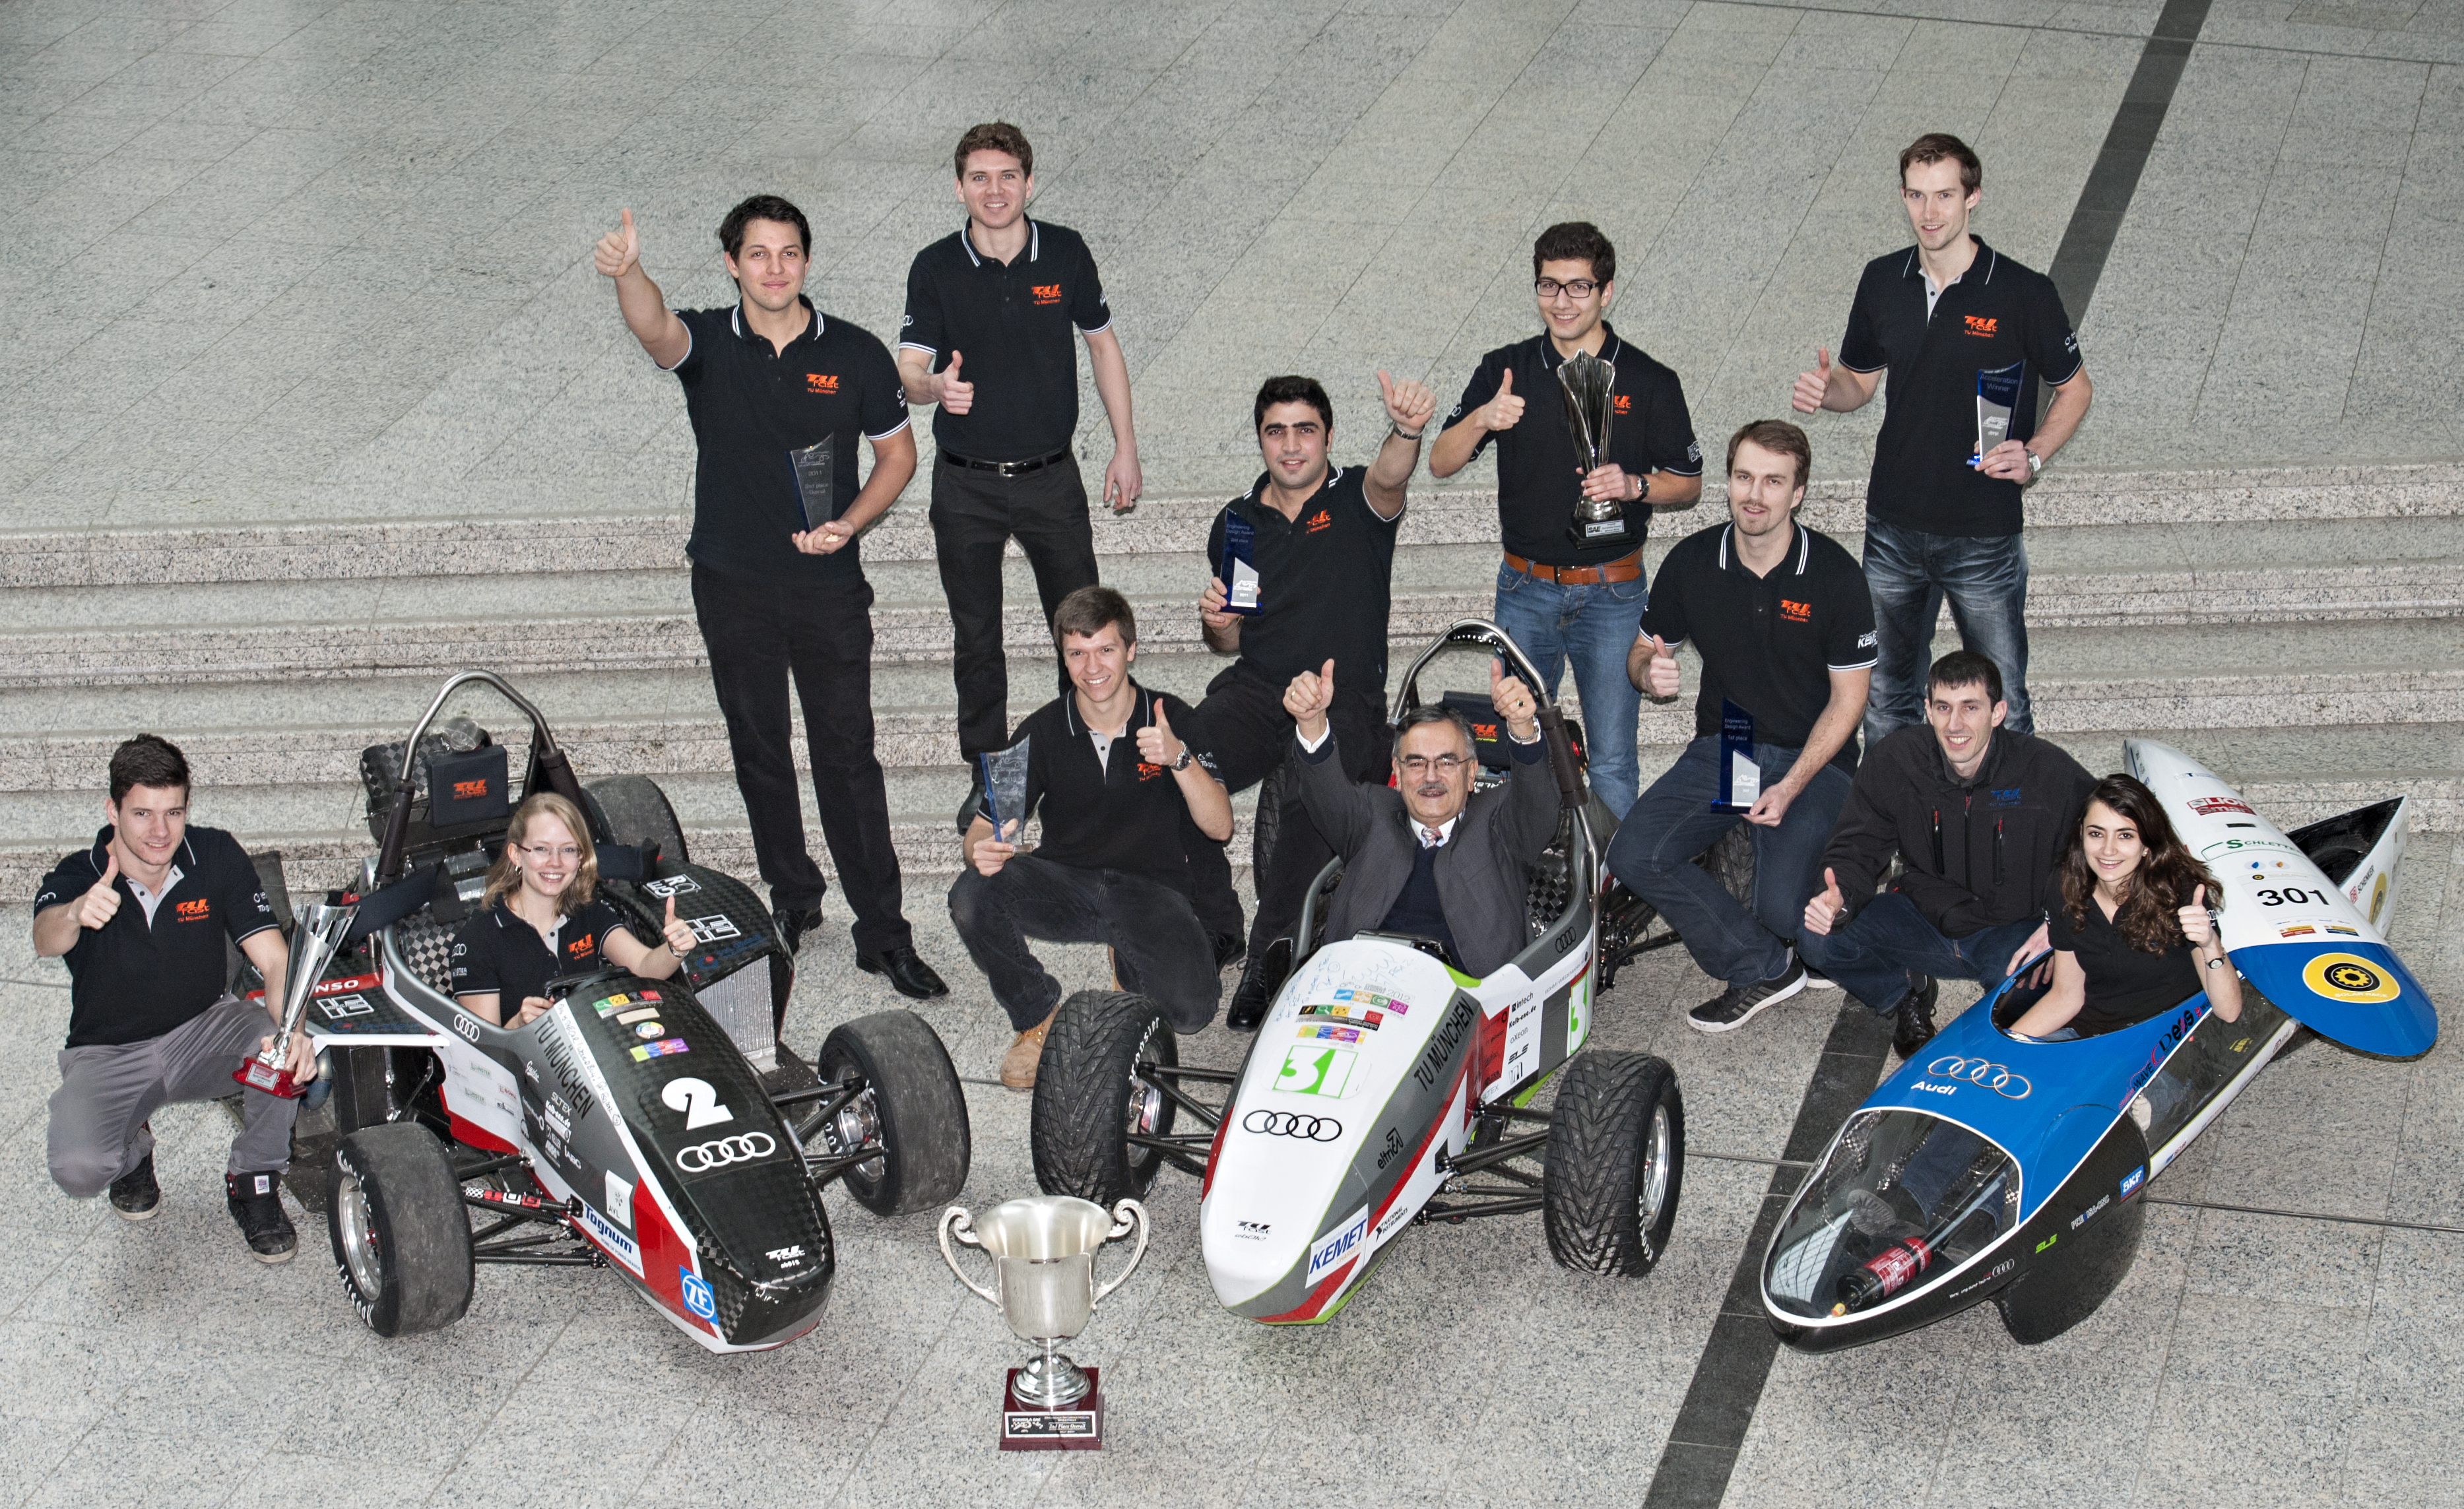 The Tufast team with their three racing cars